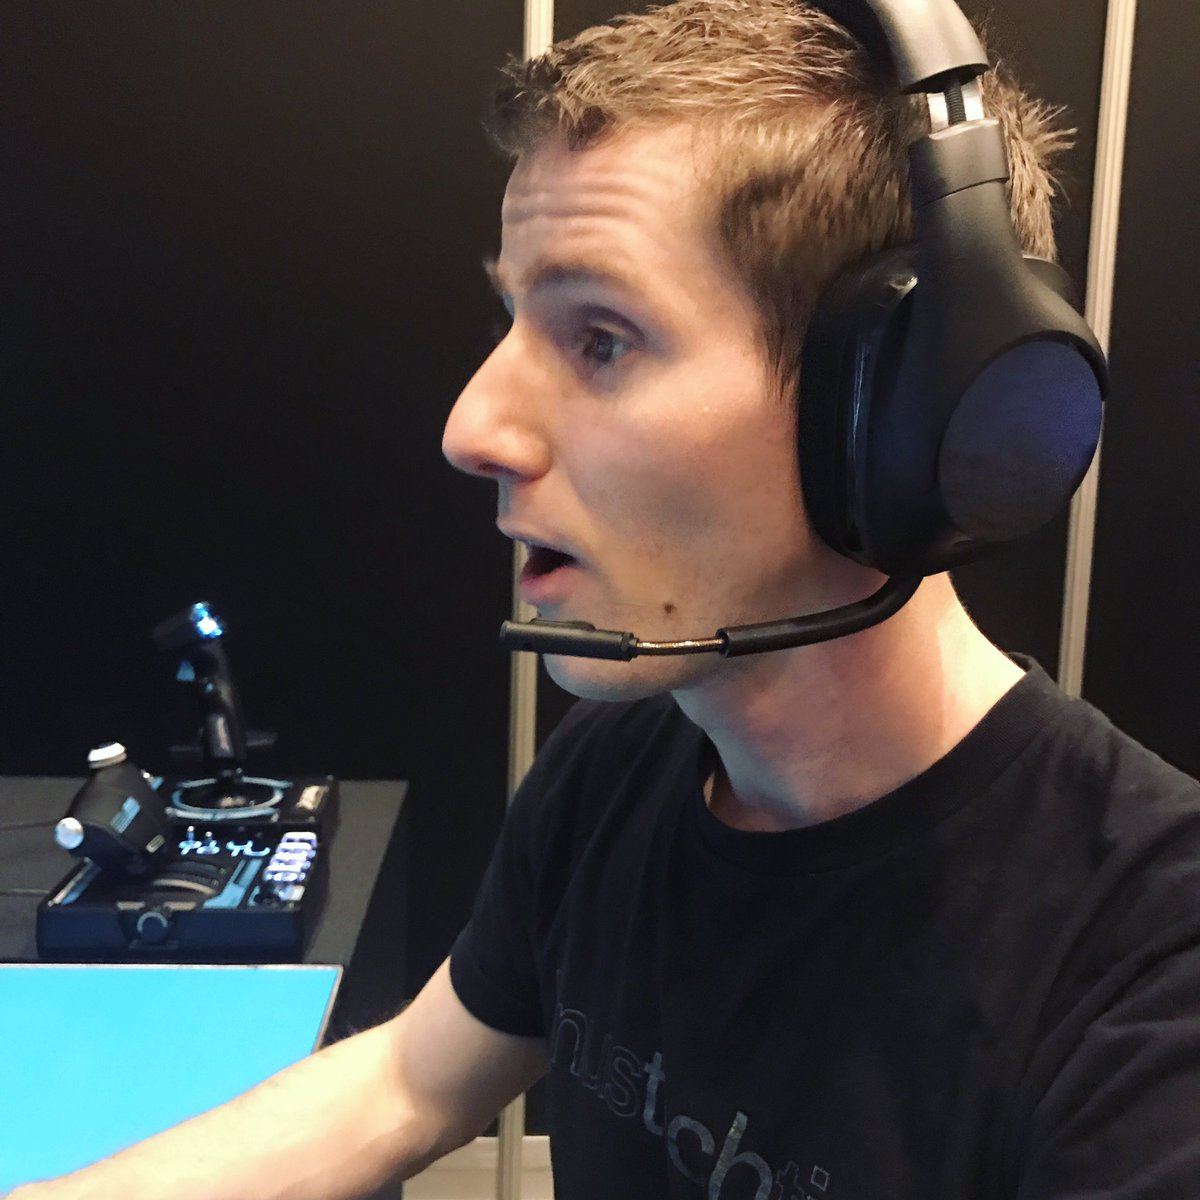 Linus Tech Tips On Twitter Trying Out The Logitech G533 Wireless